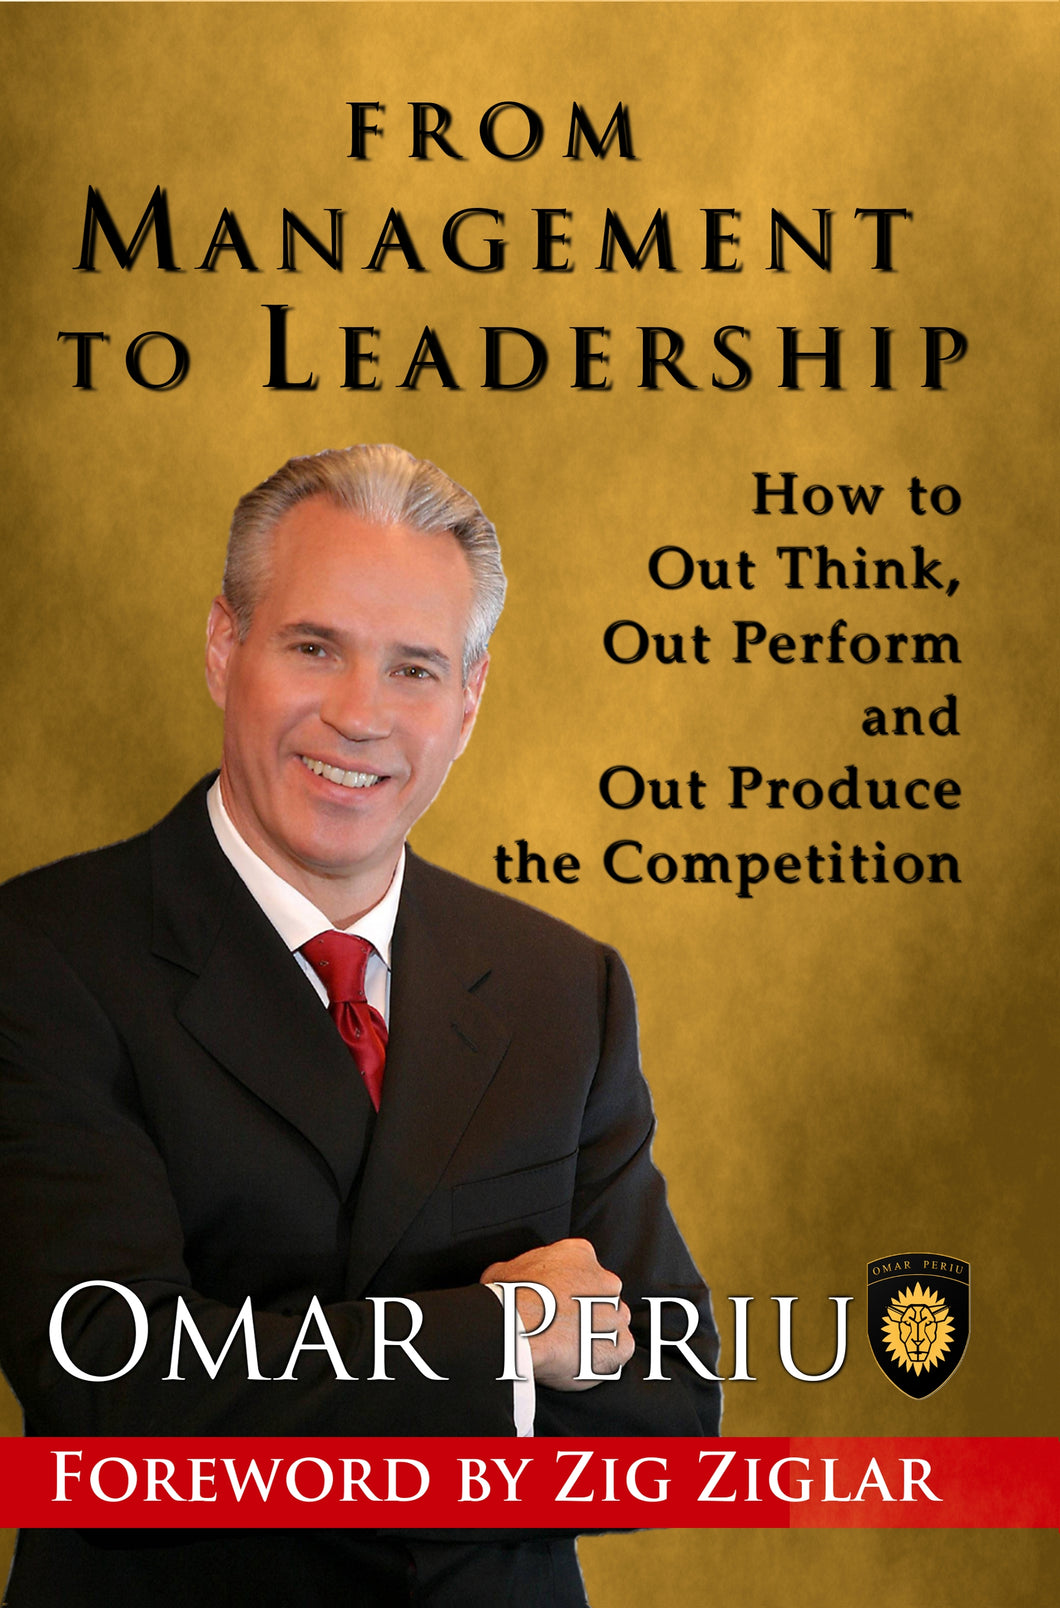 FROM MANAGEMENT TO LEADERSHIP  by Omar Periu